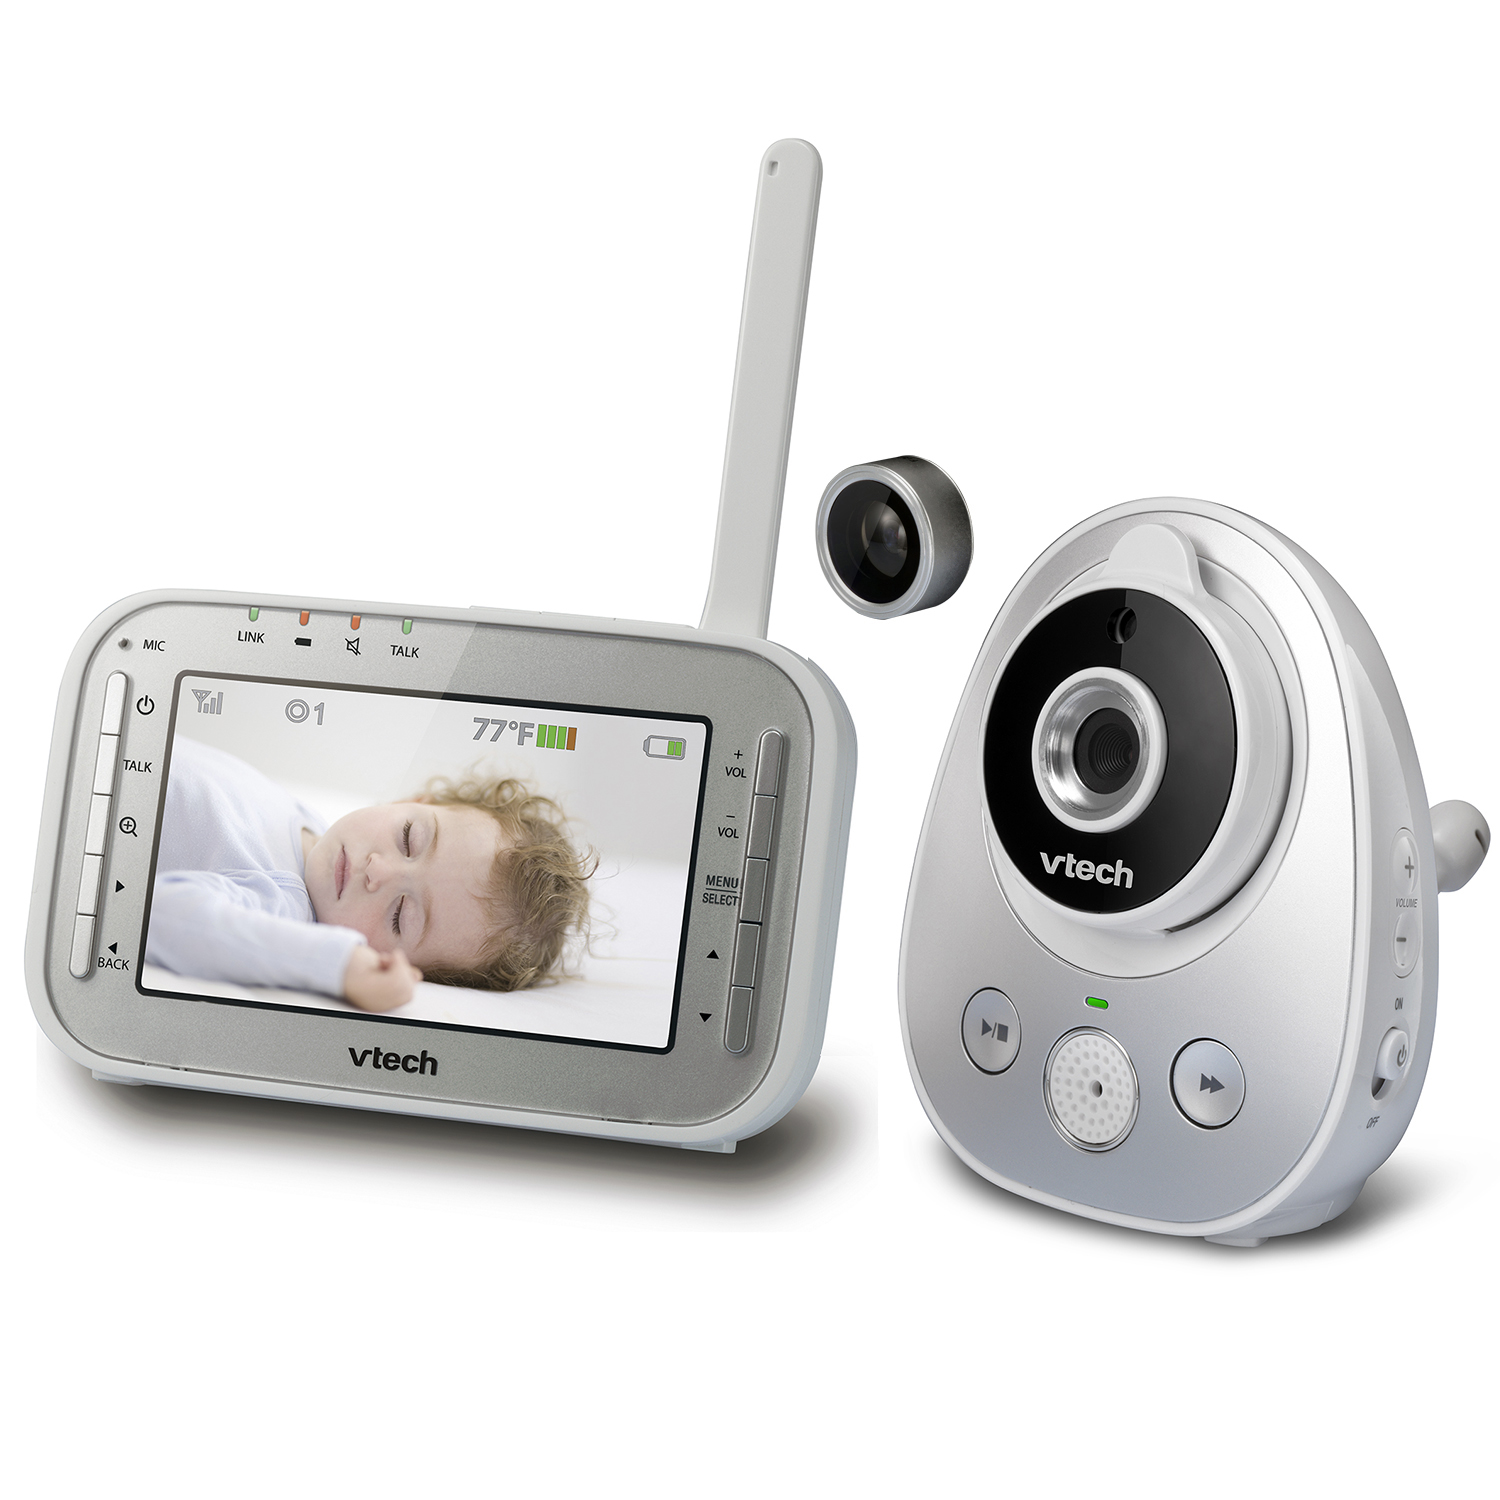 baby monitor video monitor with wide angle lens and standard lens vm342 vtech cordless phones. Black Bedroom Furniture Sets. Home Design Ideas